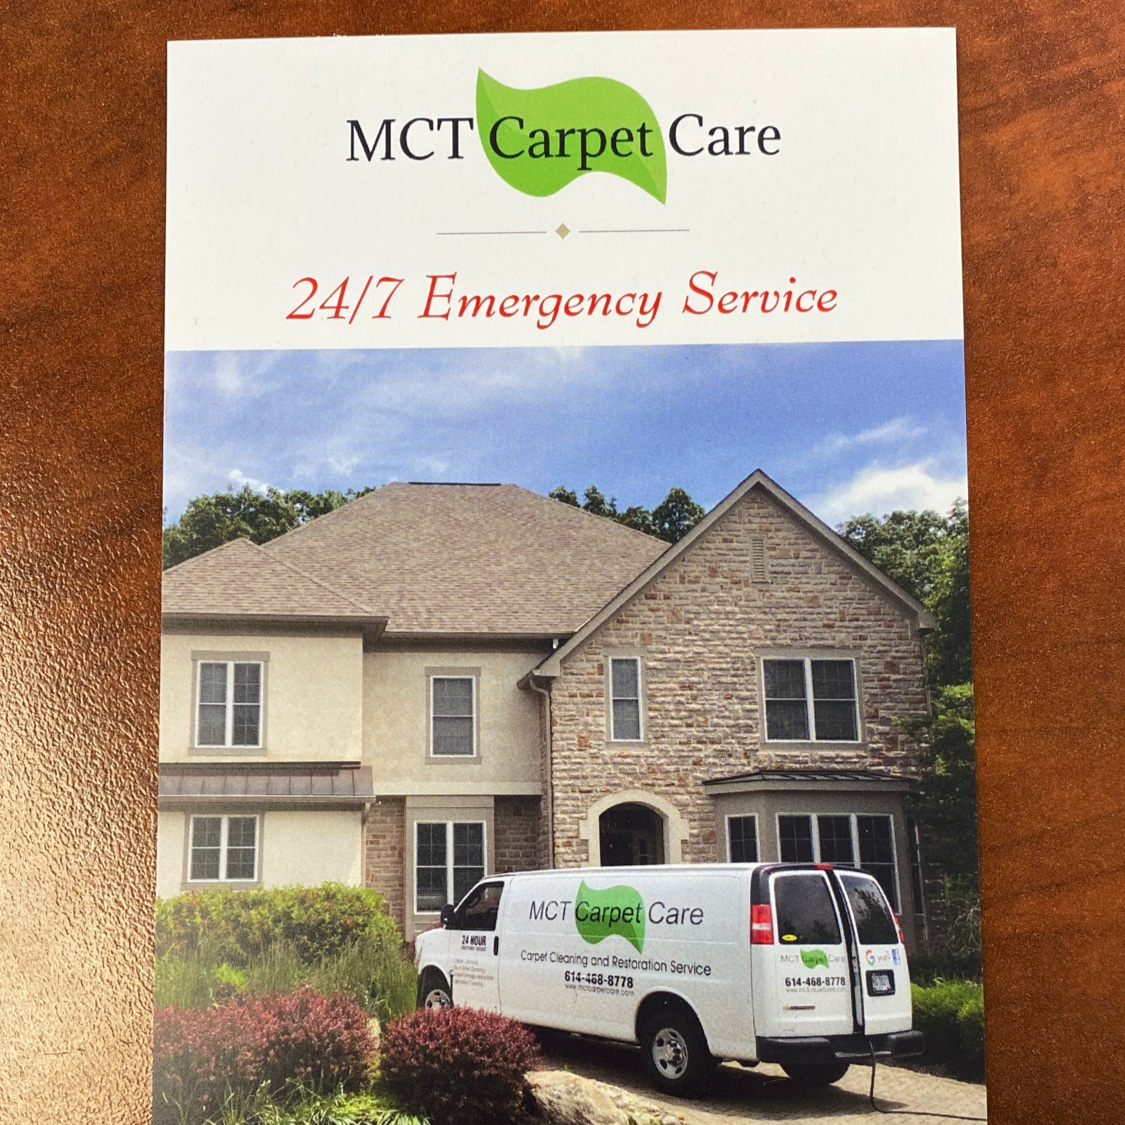 MCT Carpet Care